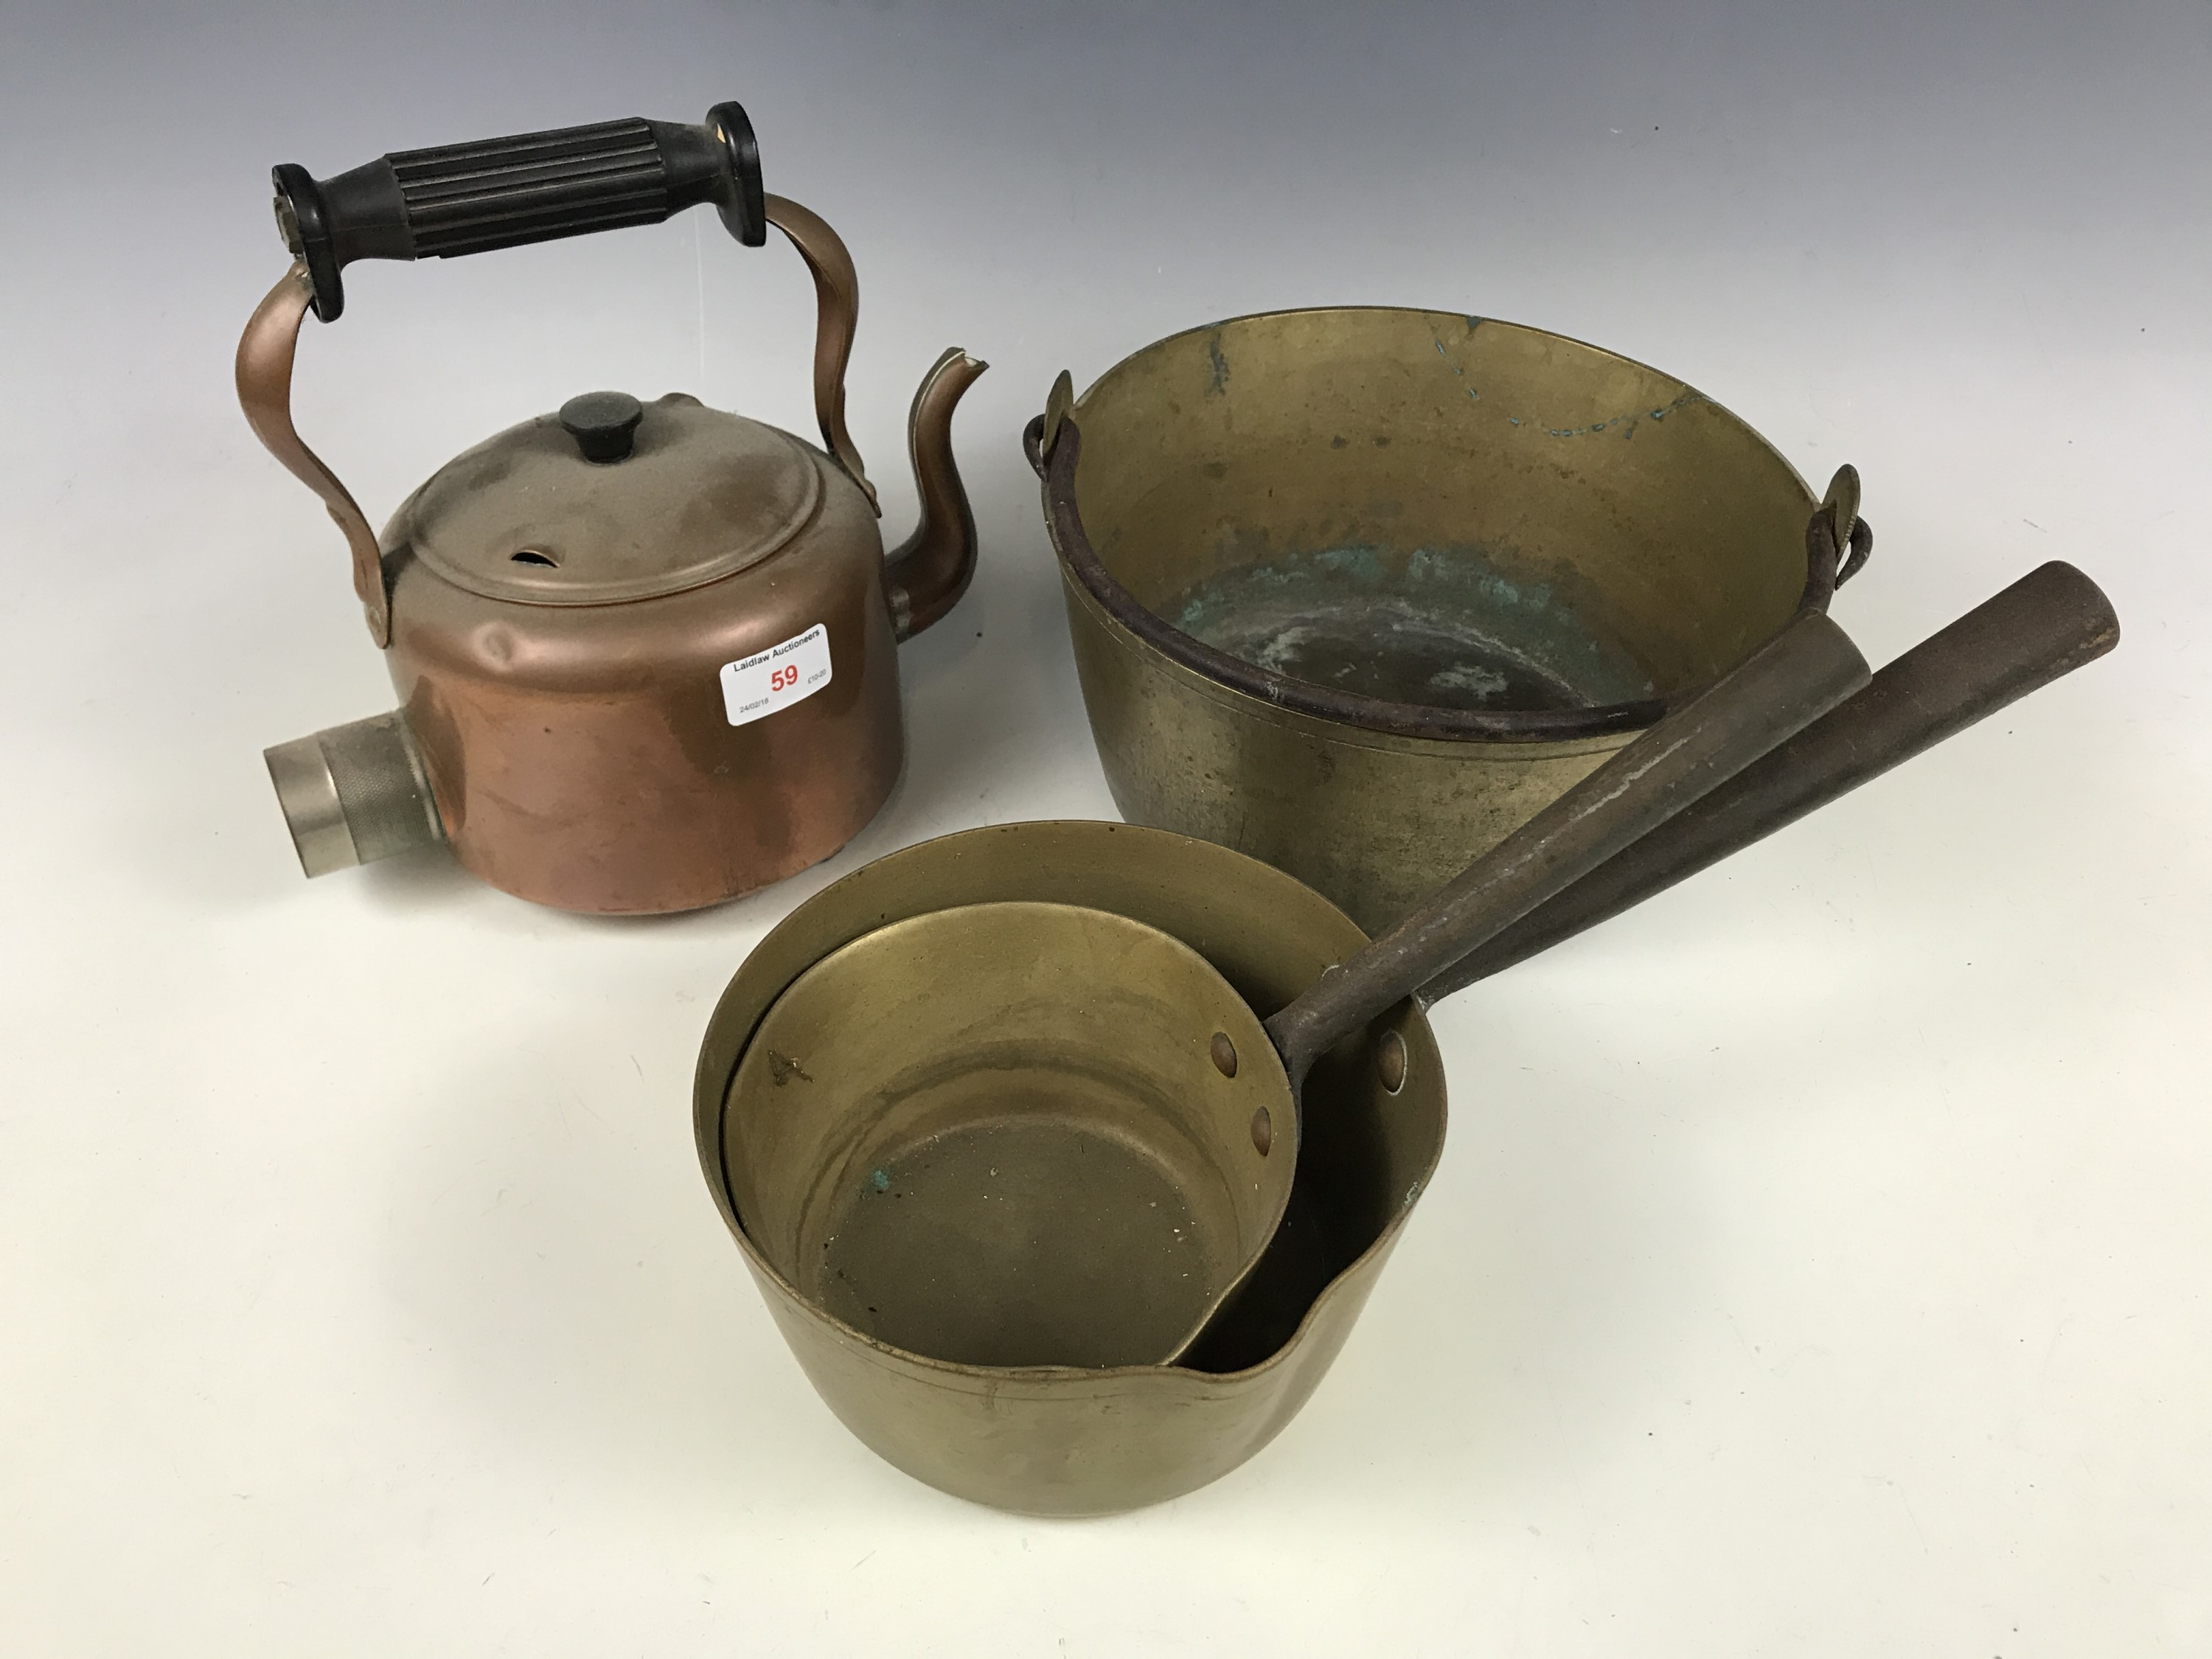 Lot 59 - A brass jam pan together with a kettle and two pans